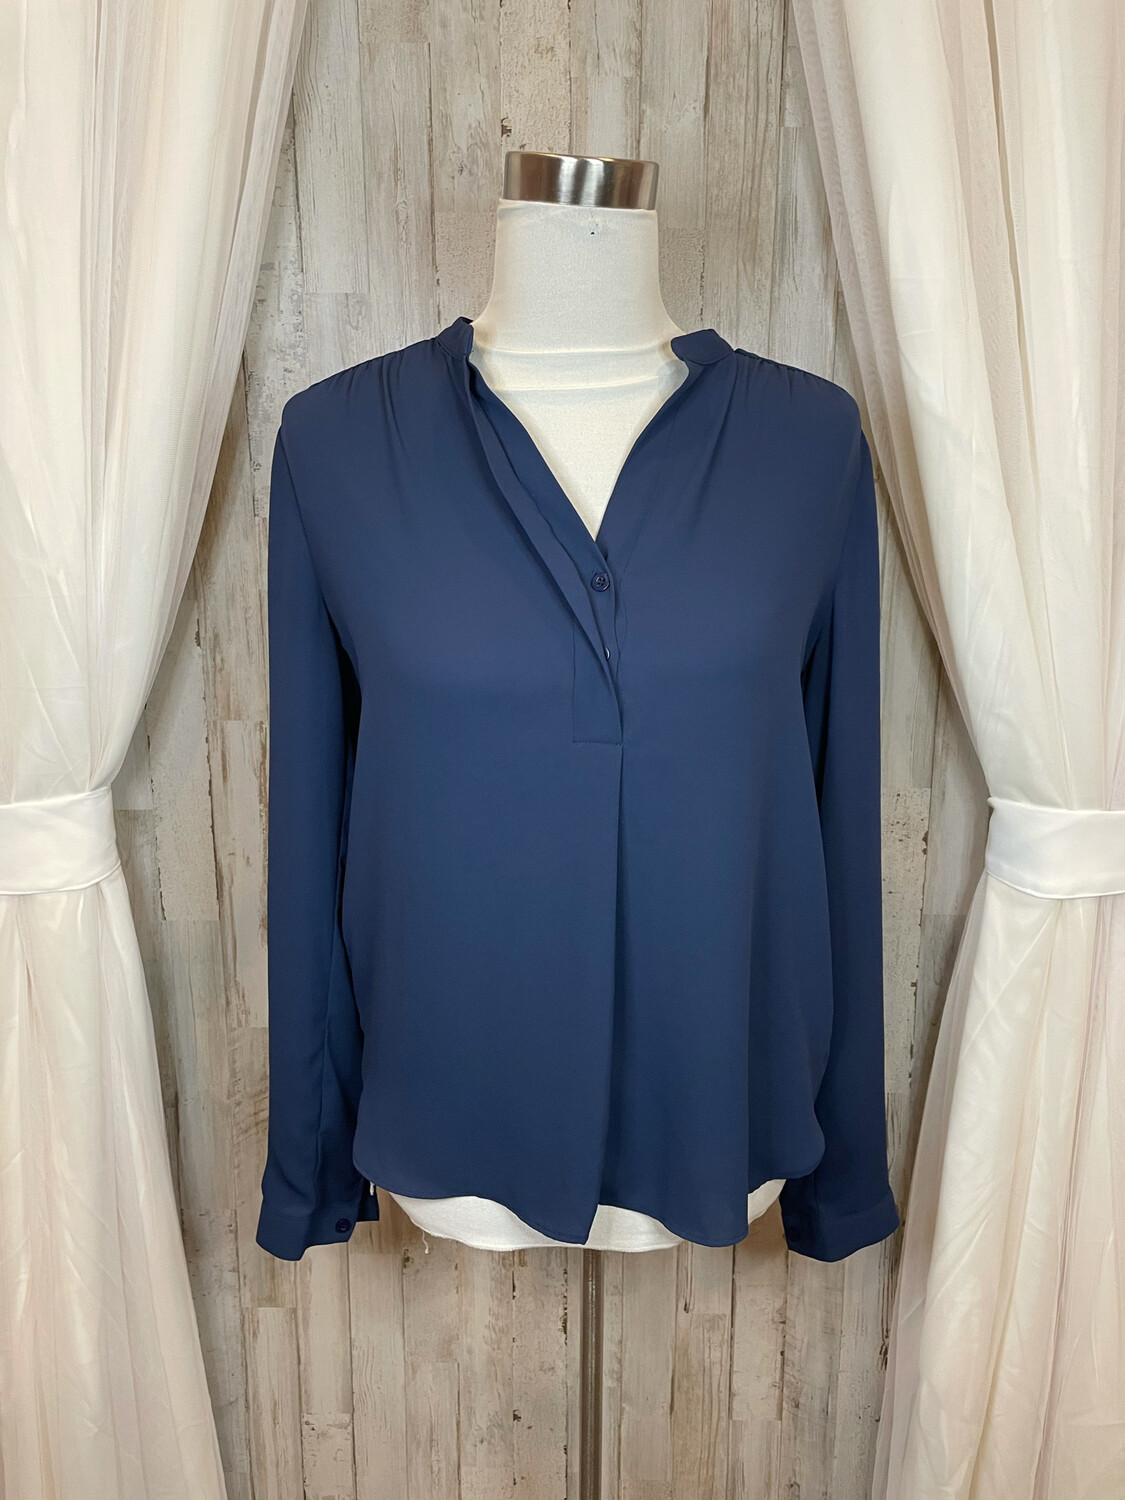 Lumiere Navy Top w/Pleated Accent at Shoulder - S